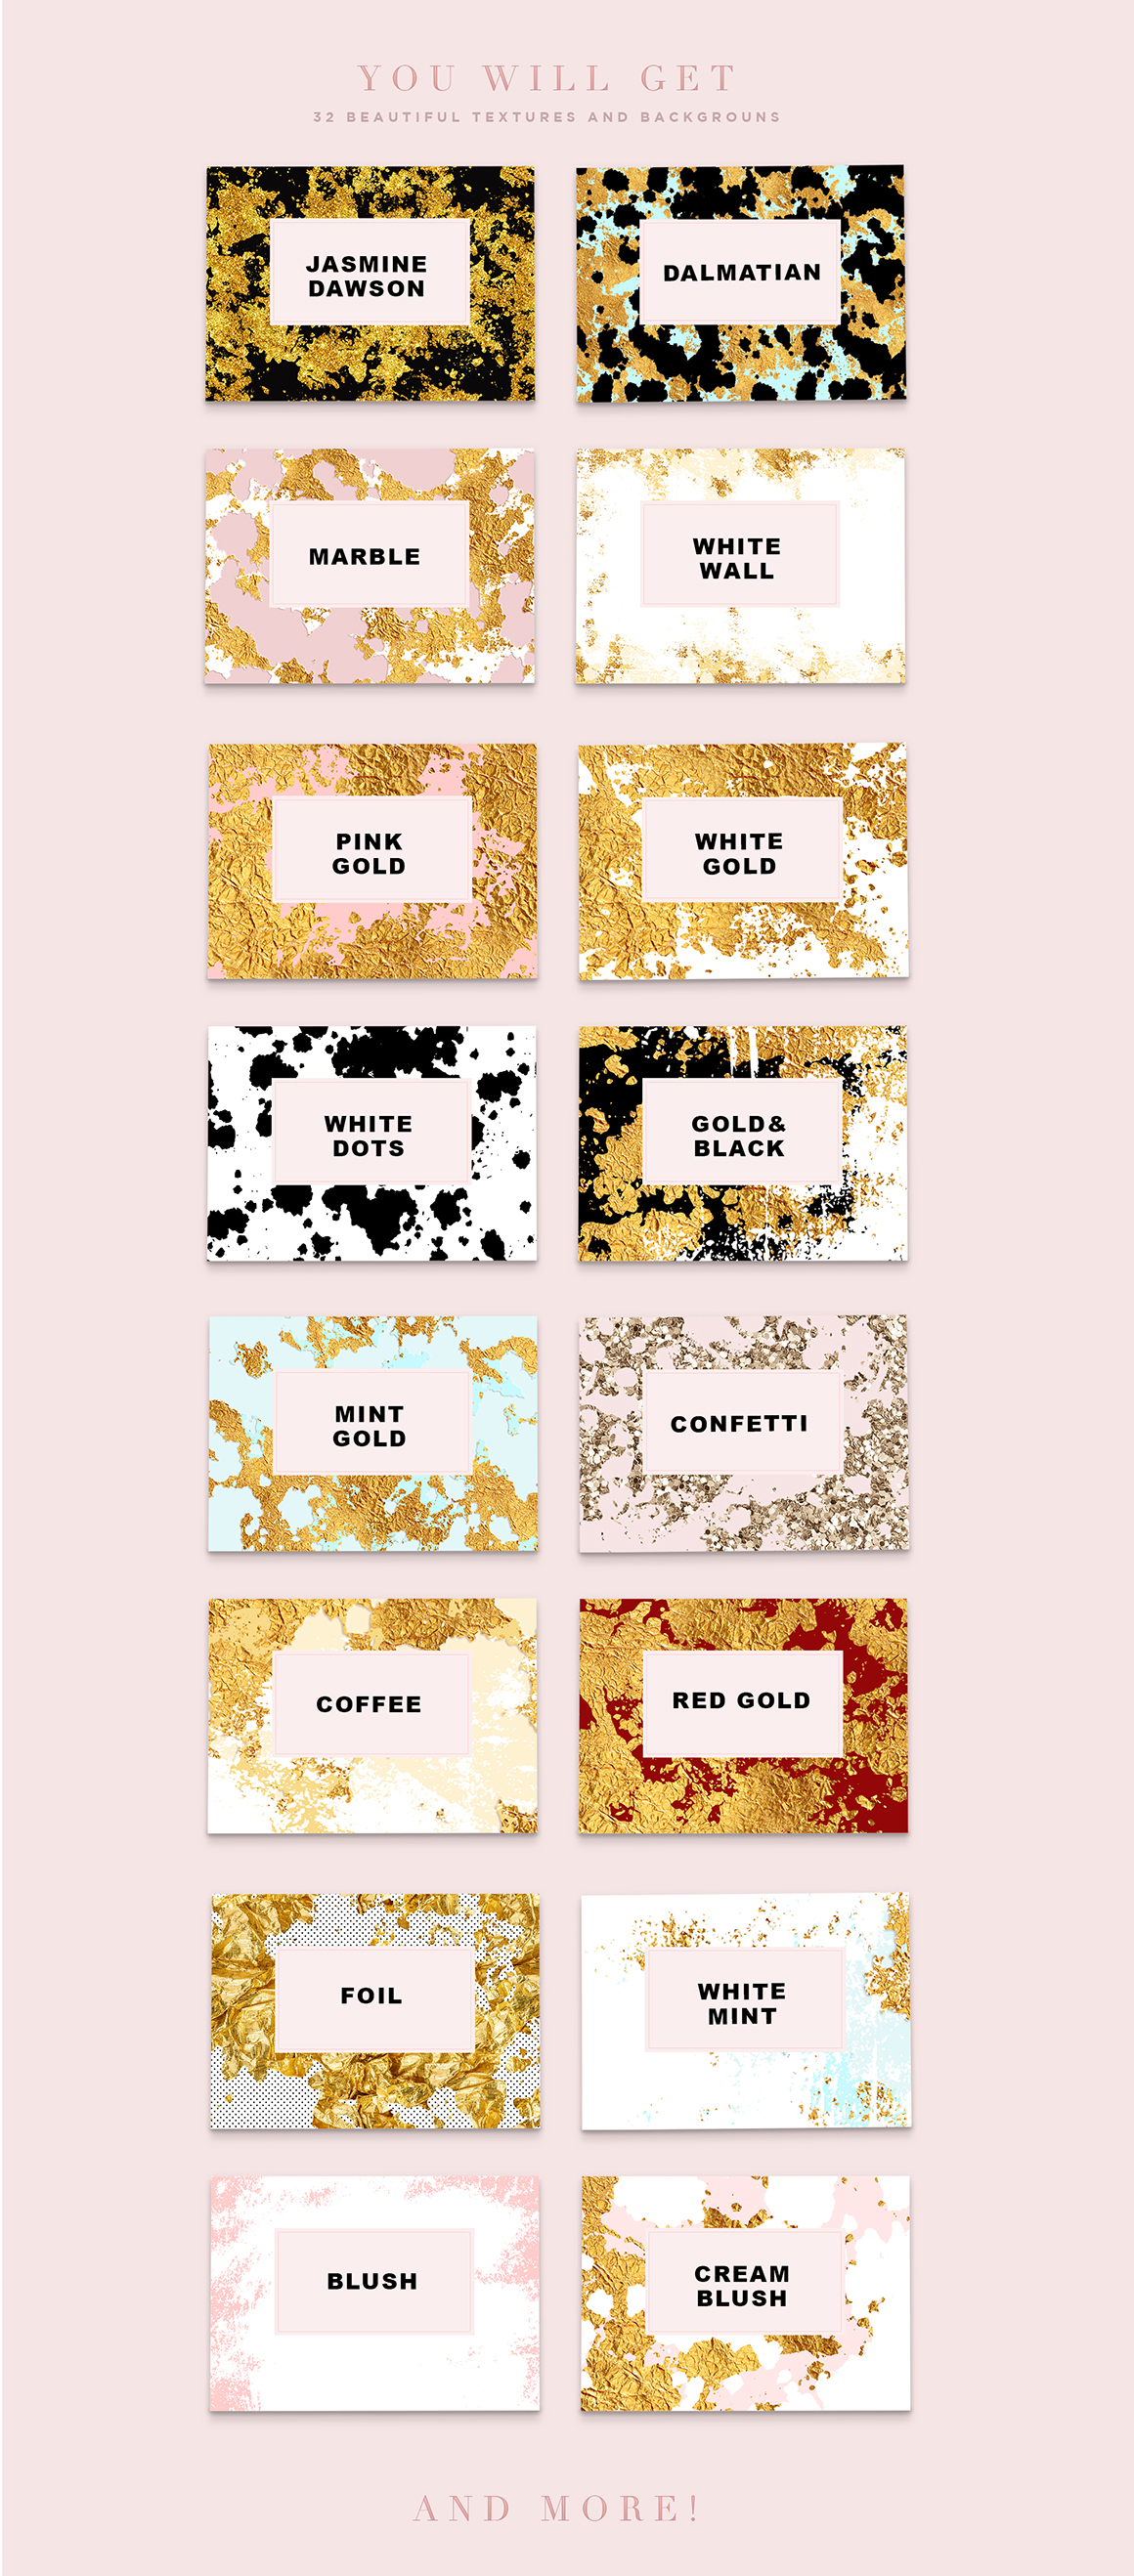 Luxury Marble & Gold Textures